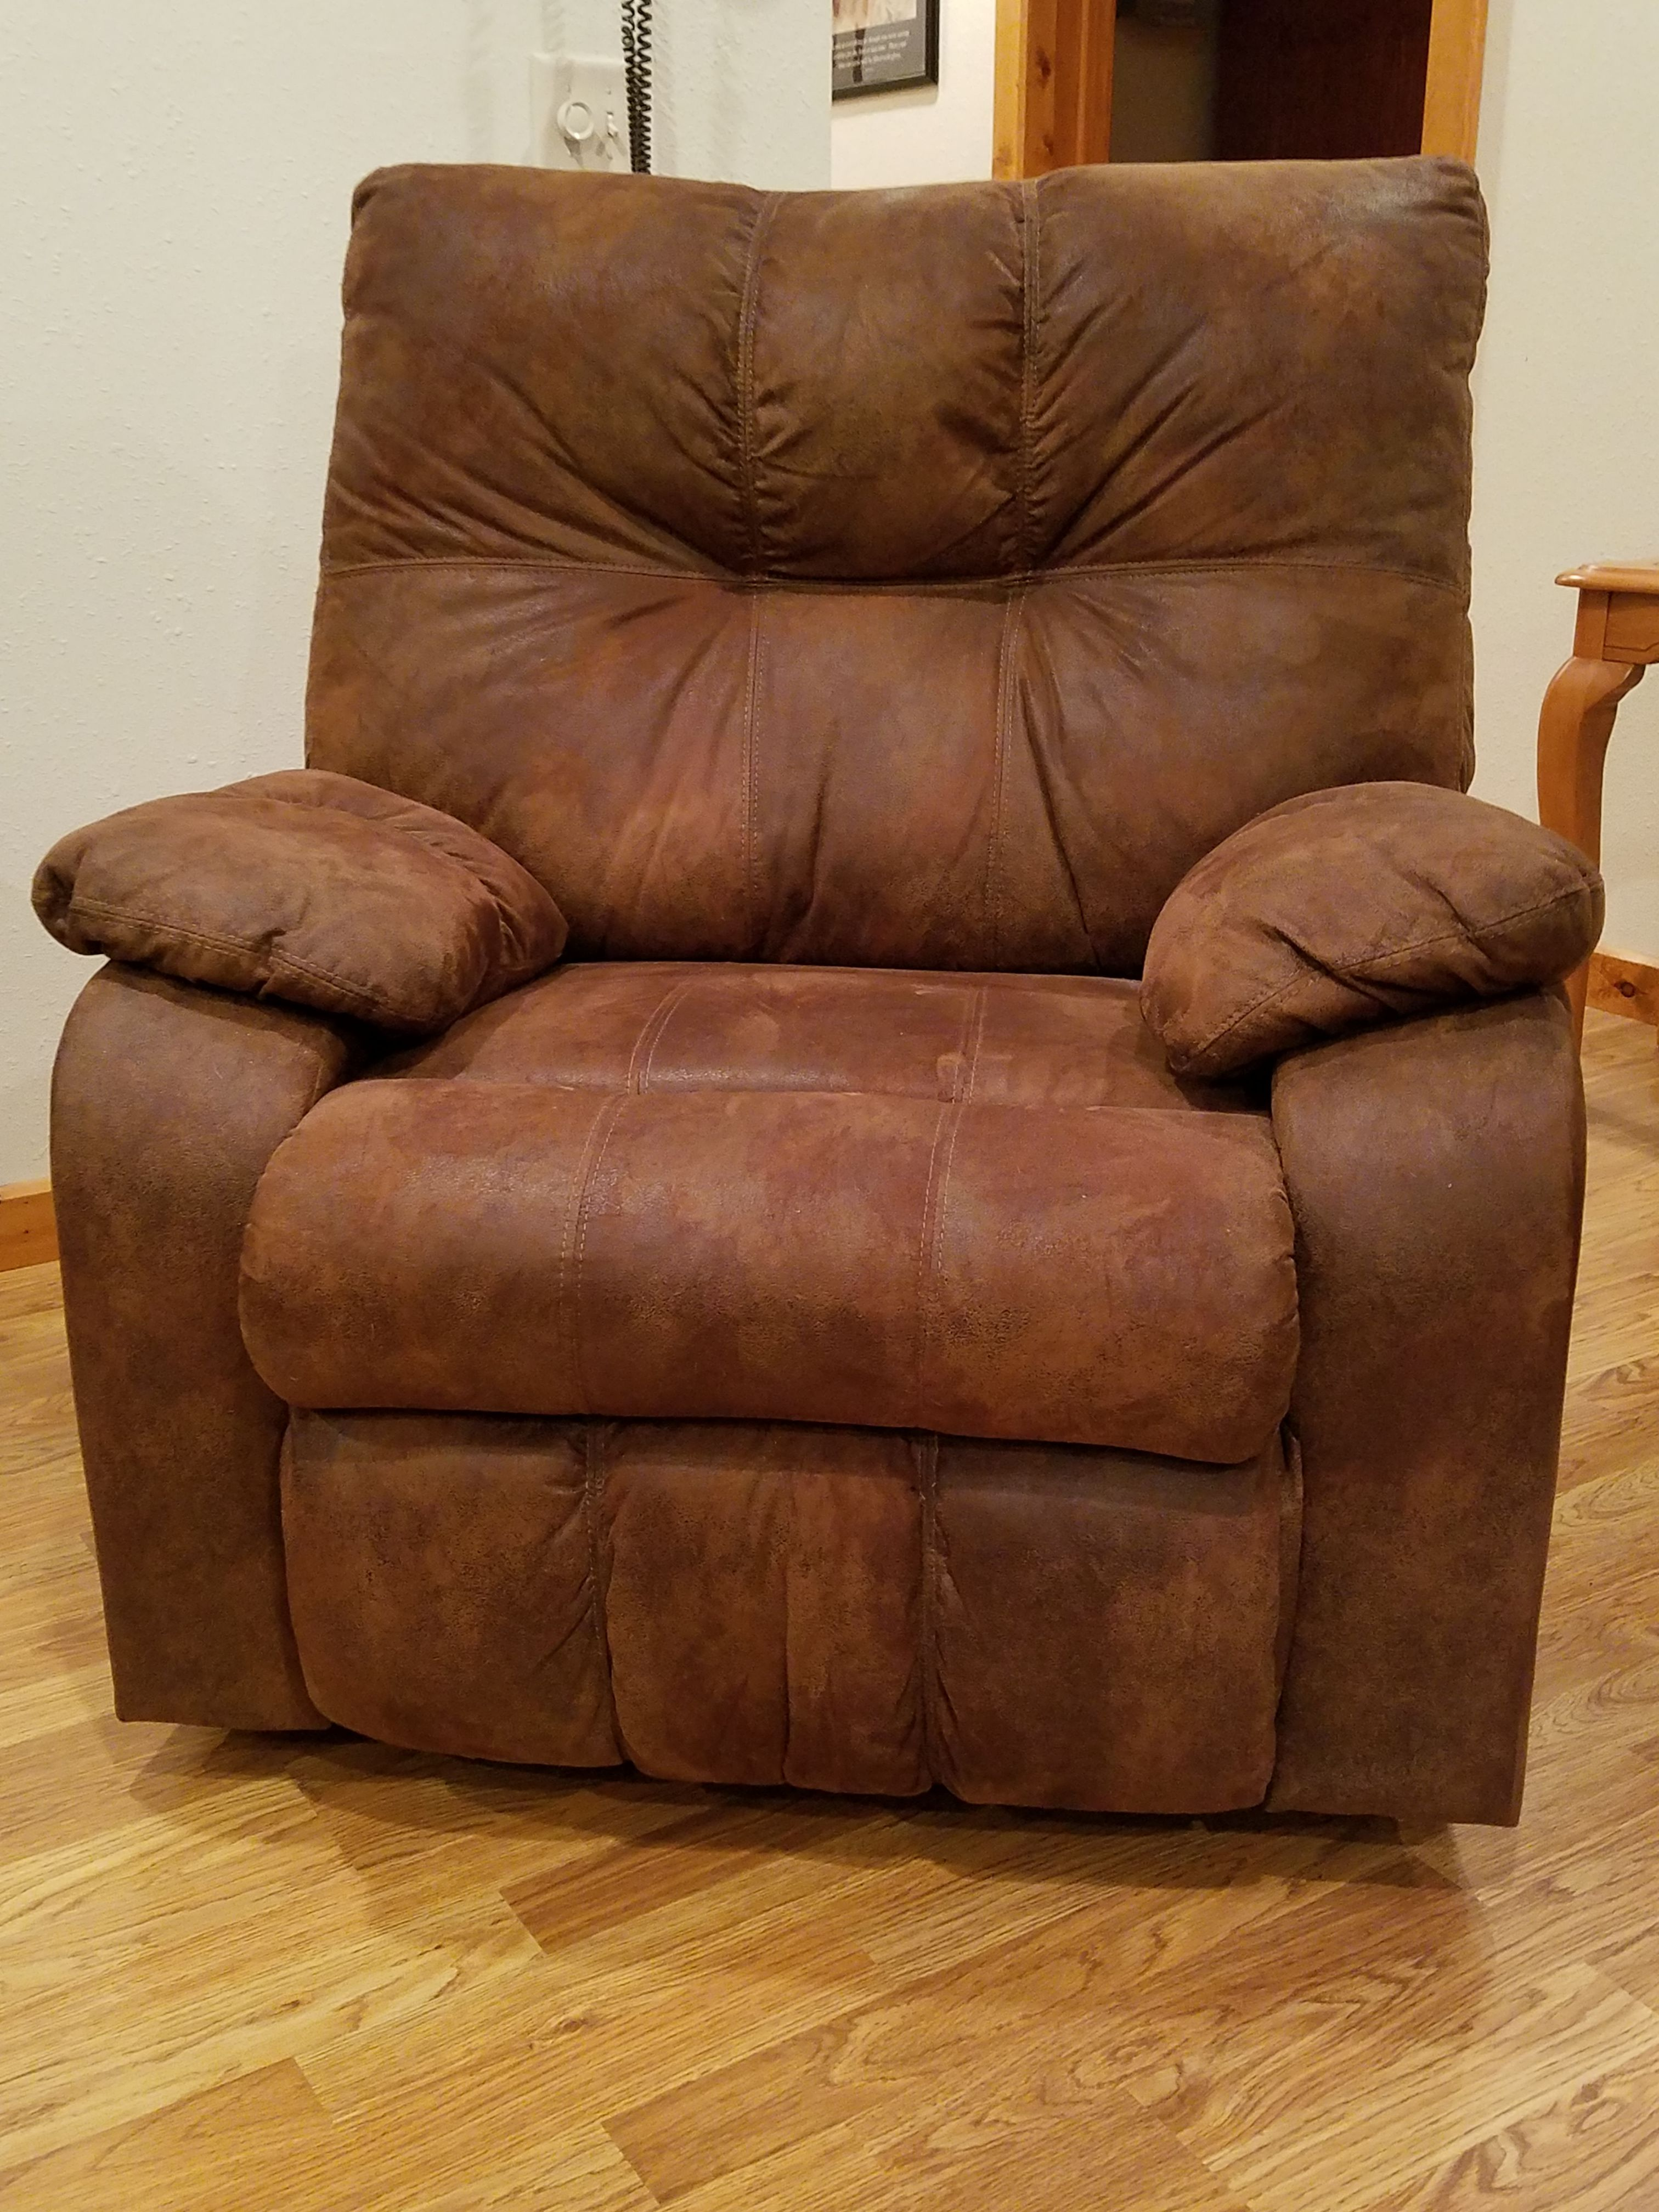 Recliner Chair image 1